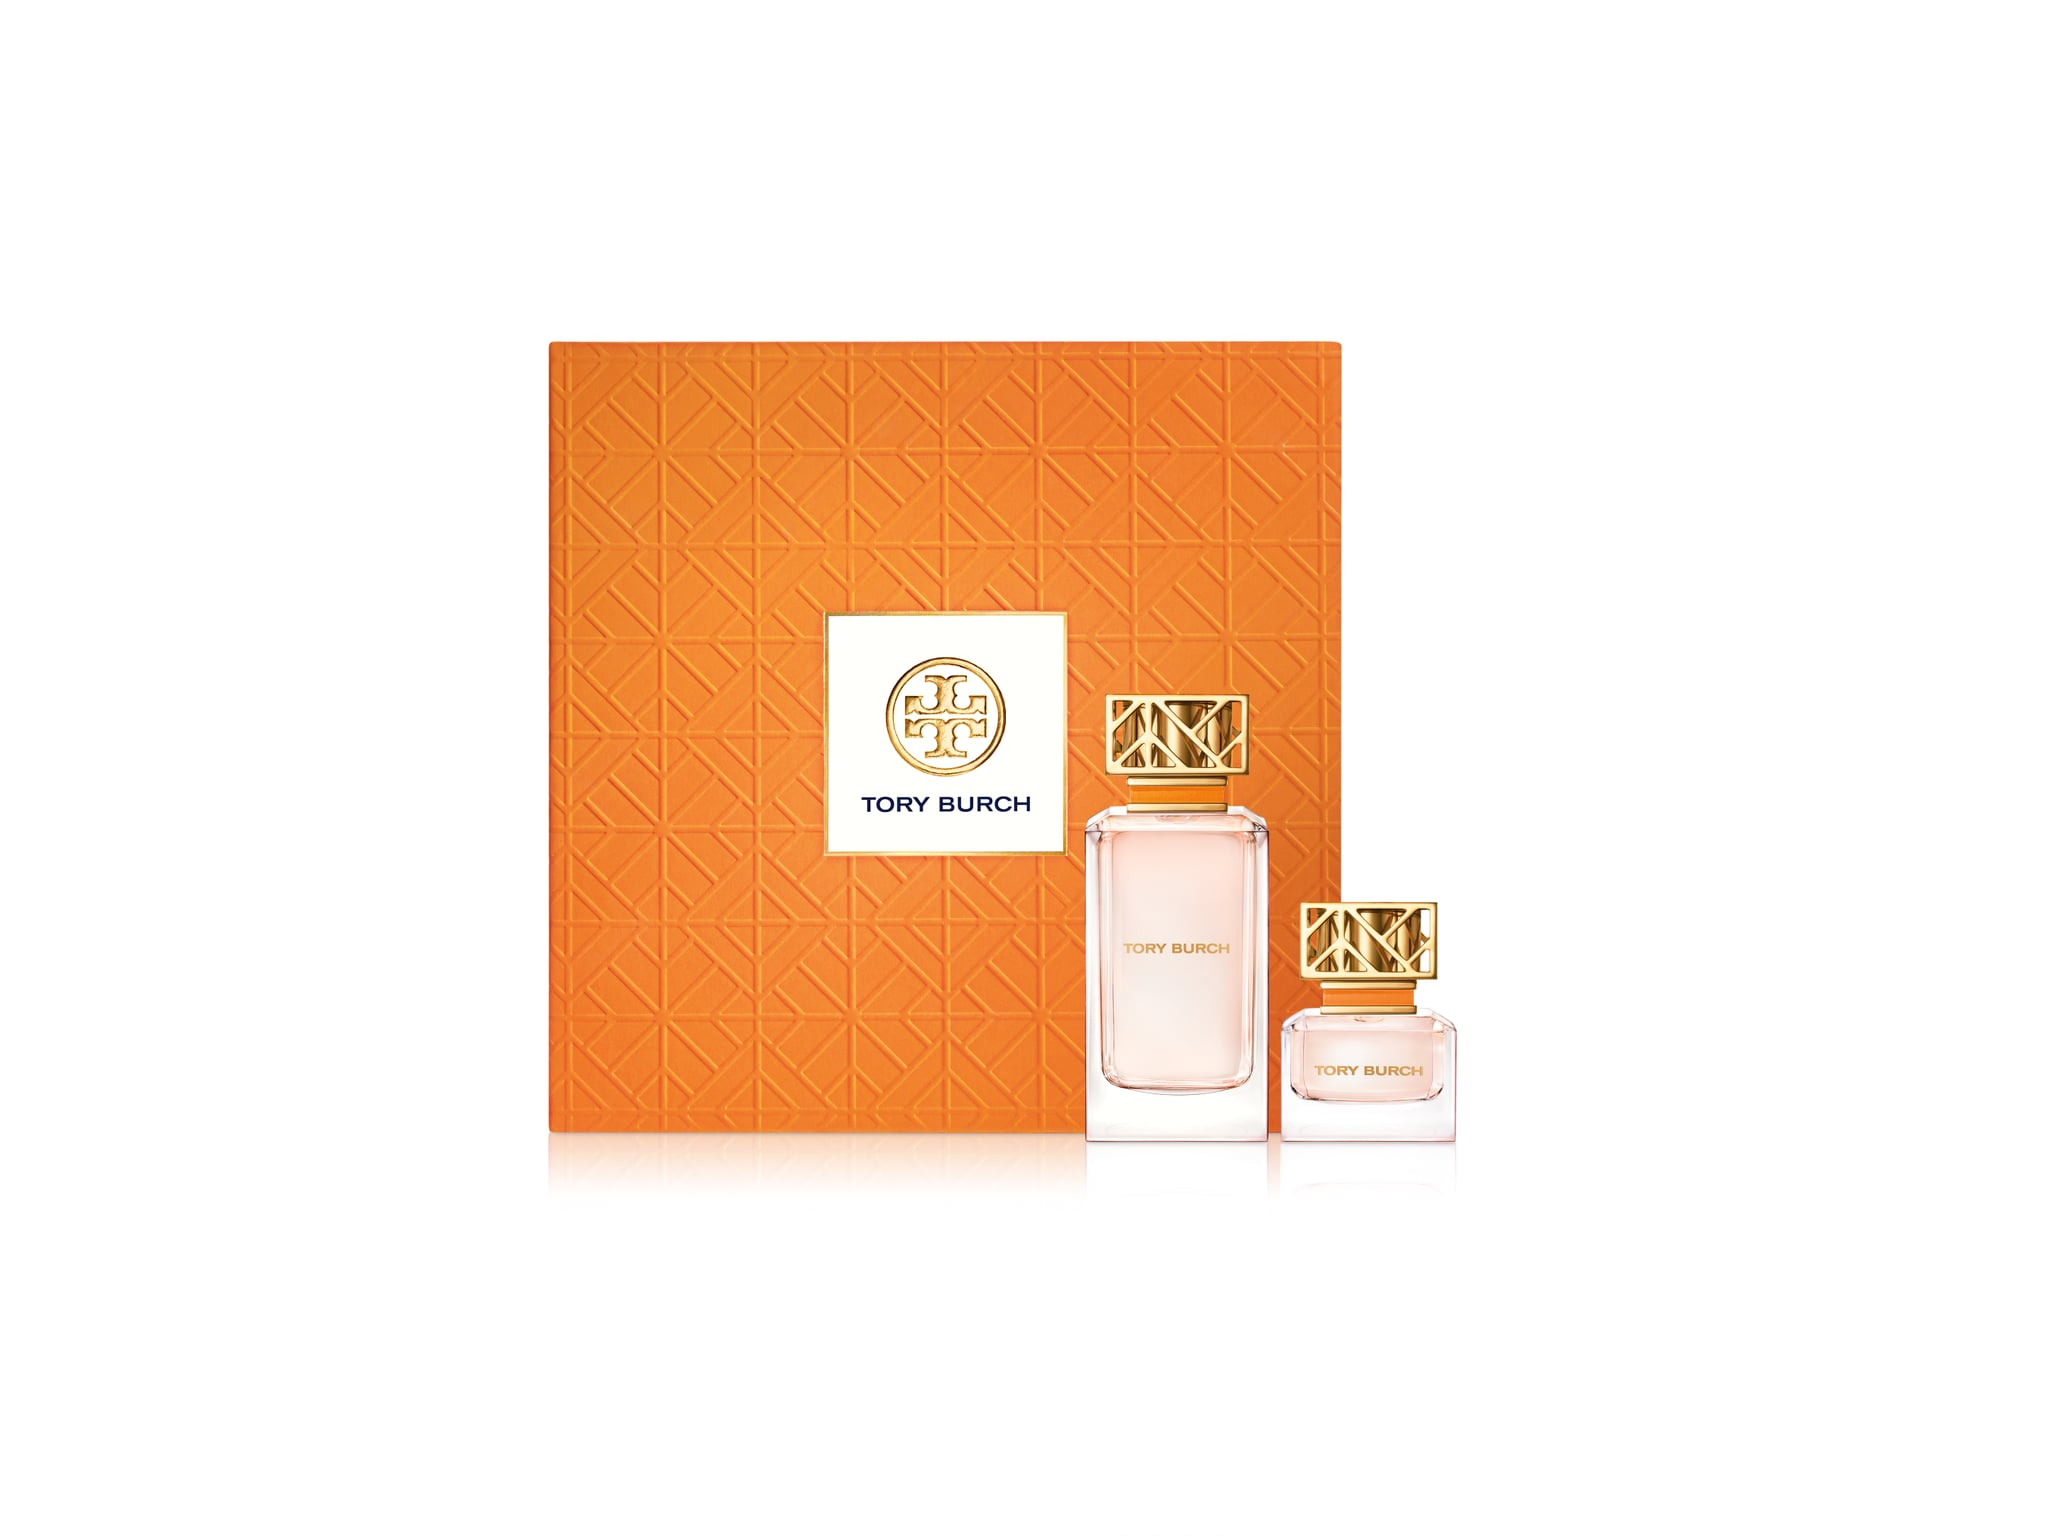 Tory Burch Exclusive Exclusive Anniversary Set, $115 ($172 Value)